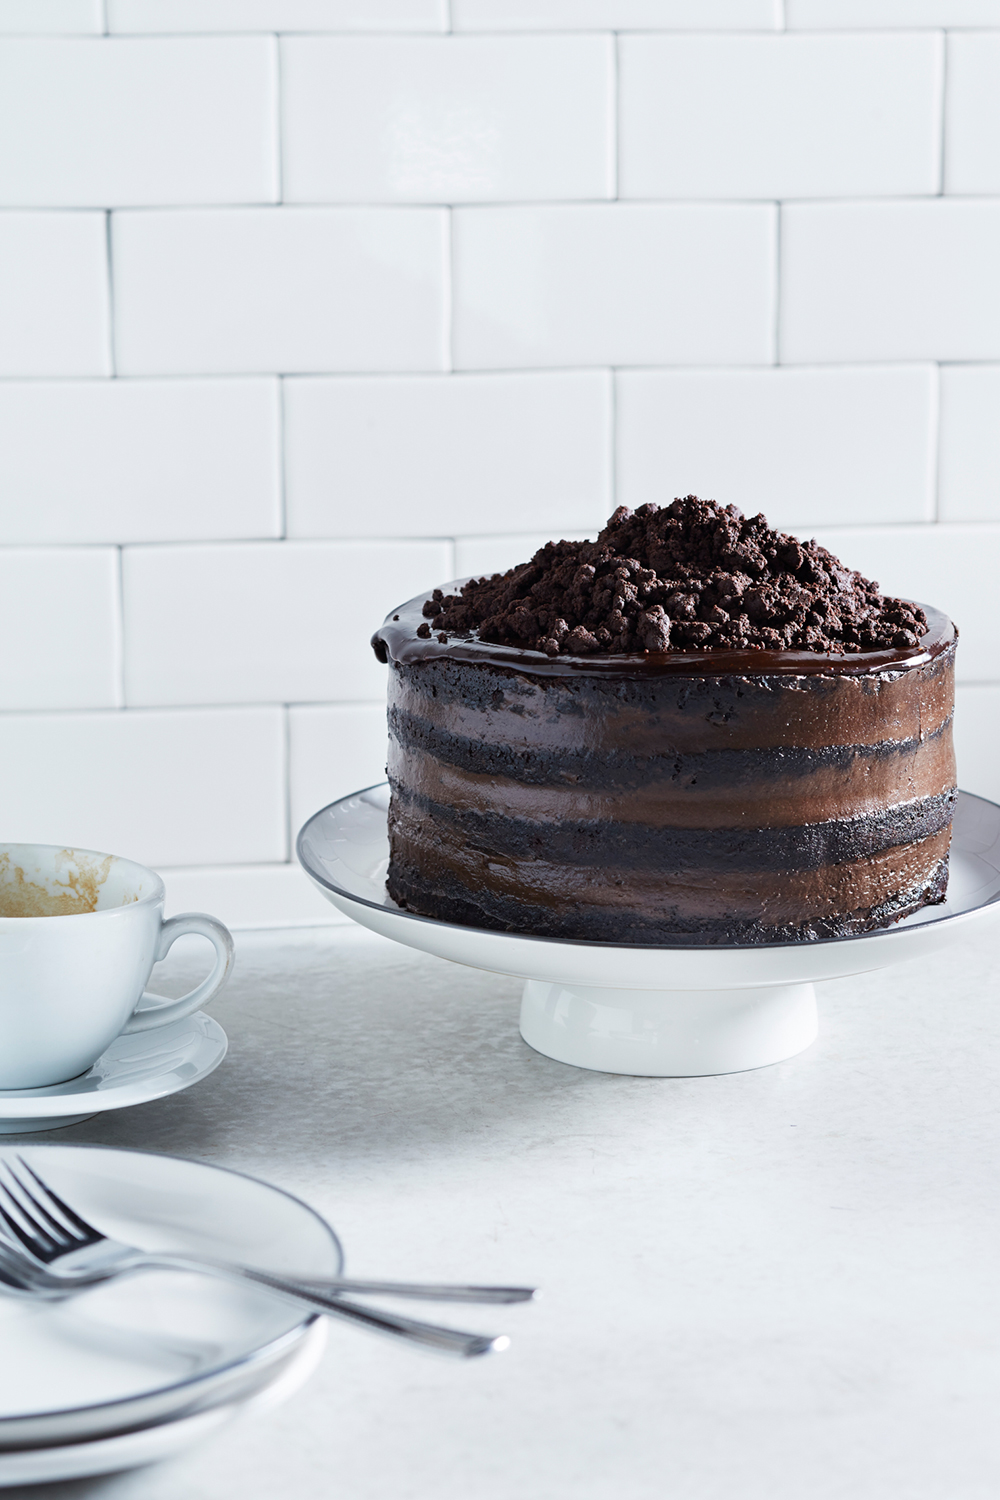 Brooklyn Blackout Cake Recipe